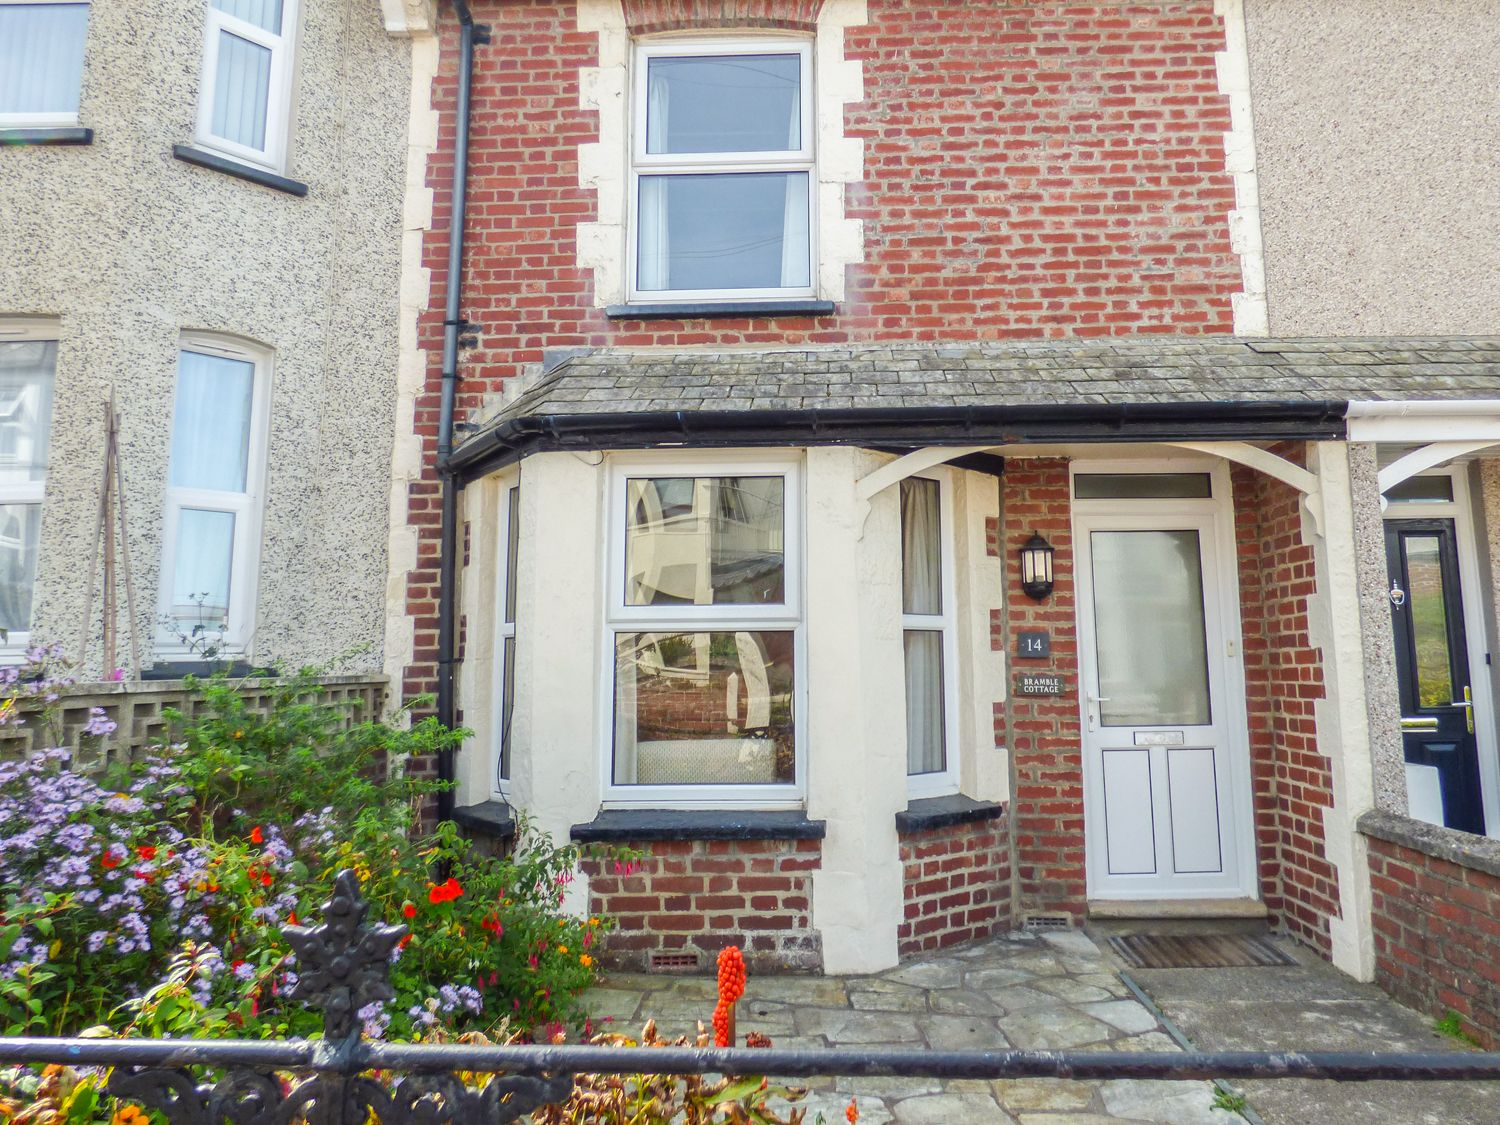 14 Bramble Hill - Cornwall - 968127 - photo 1